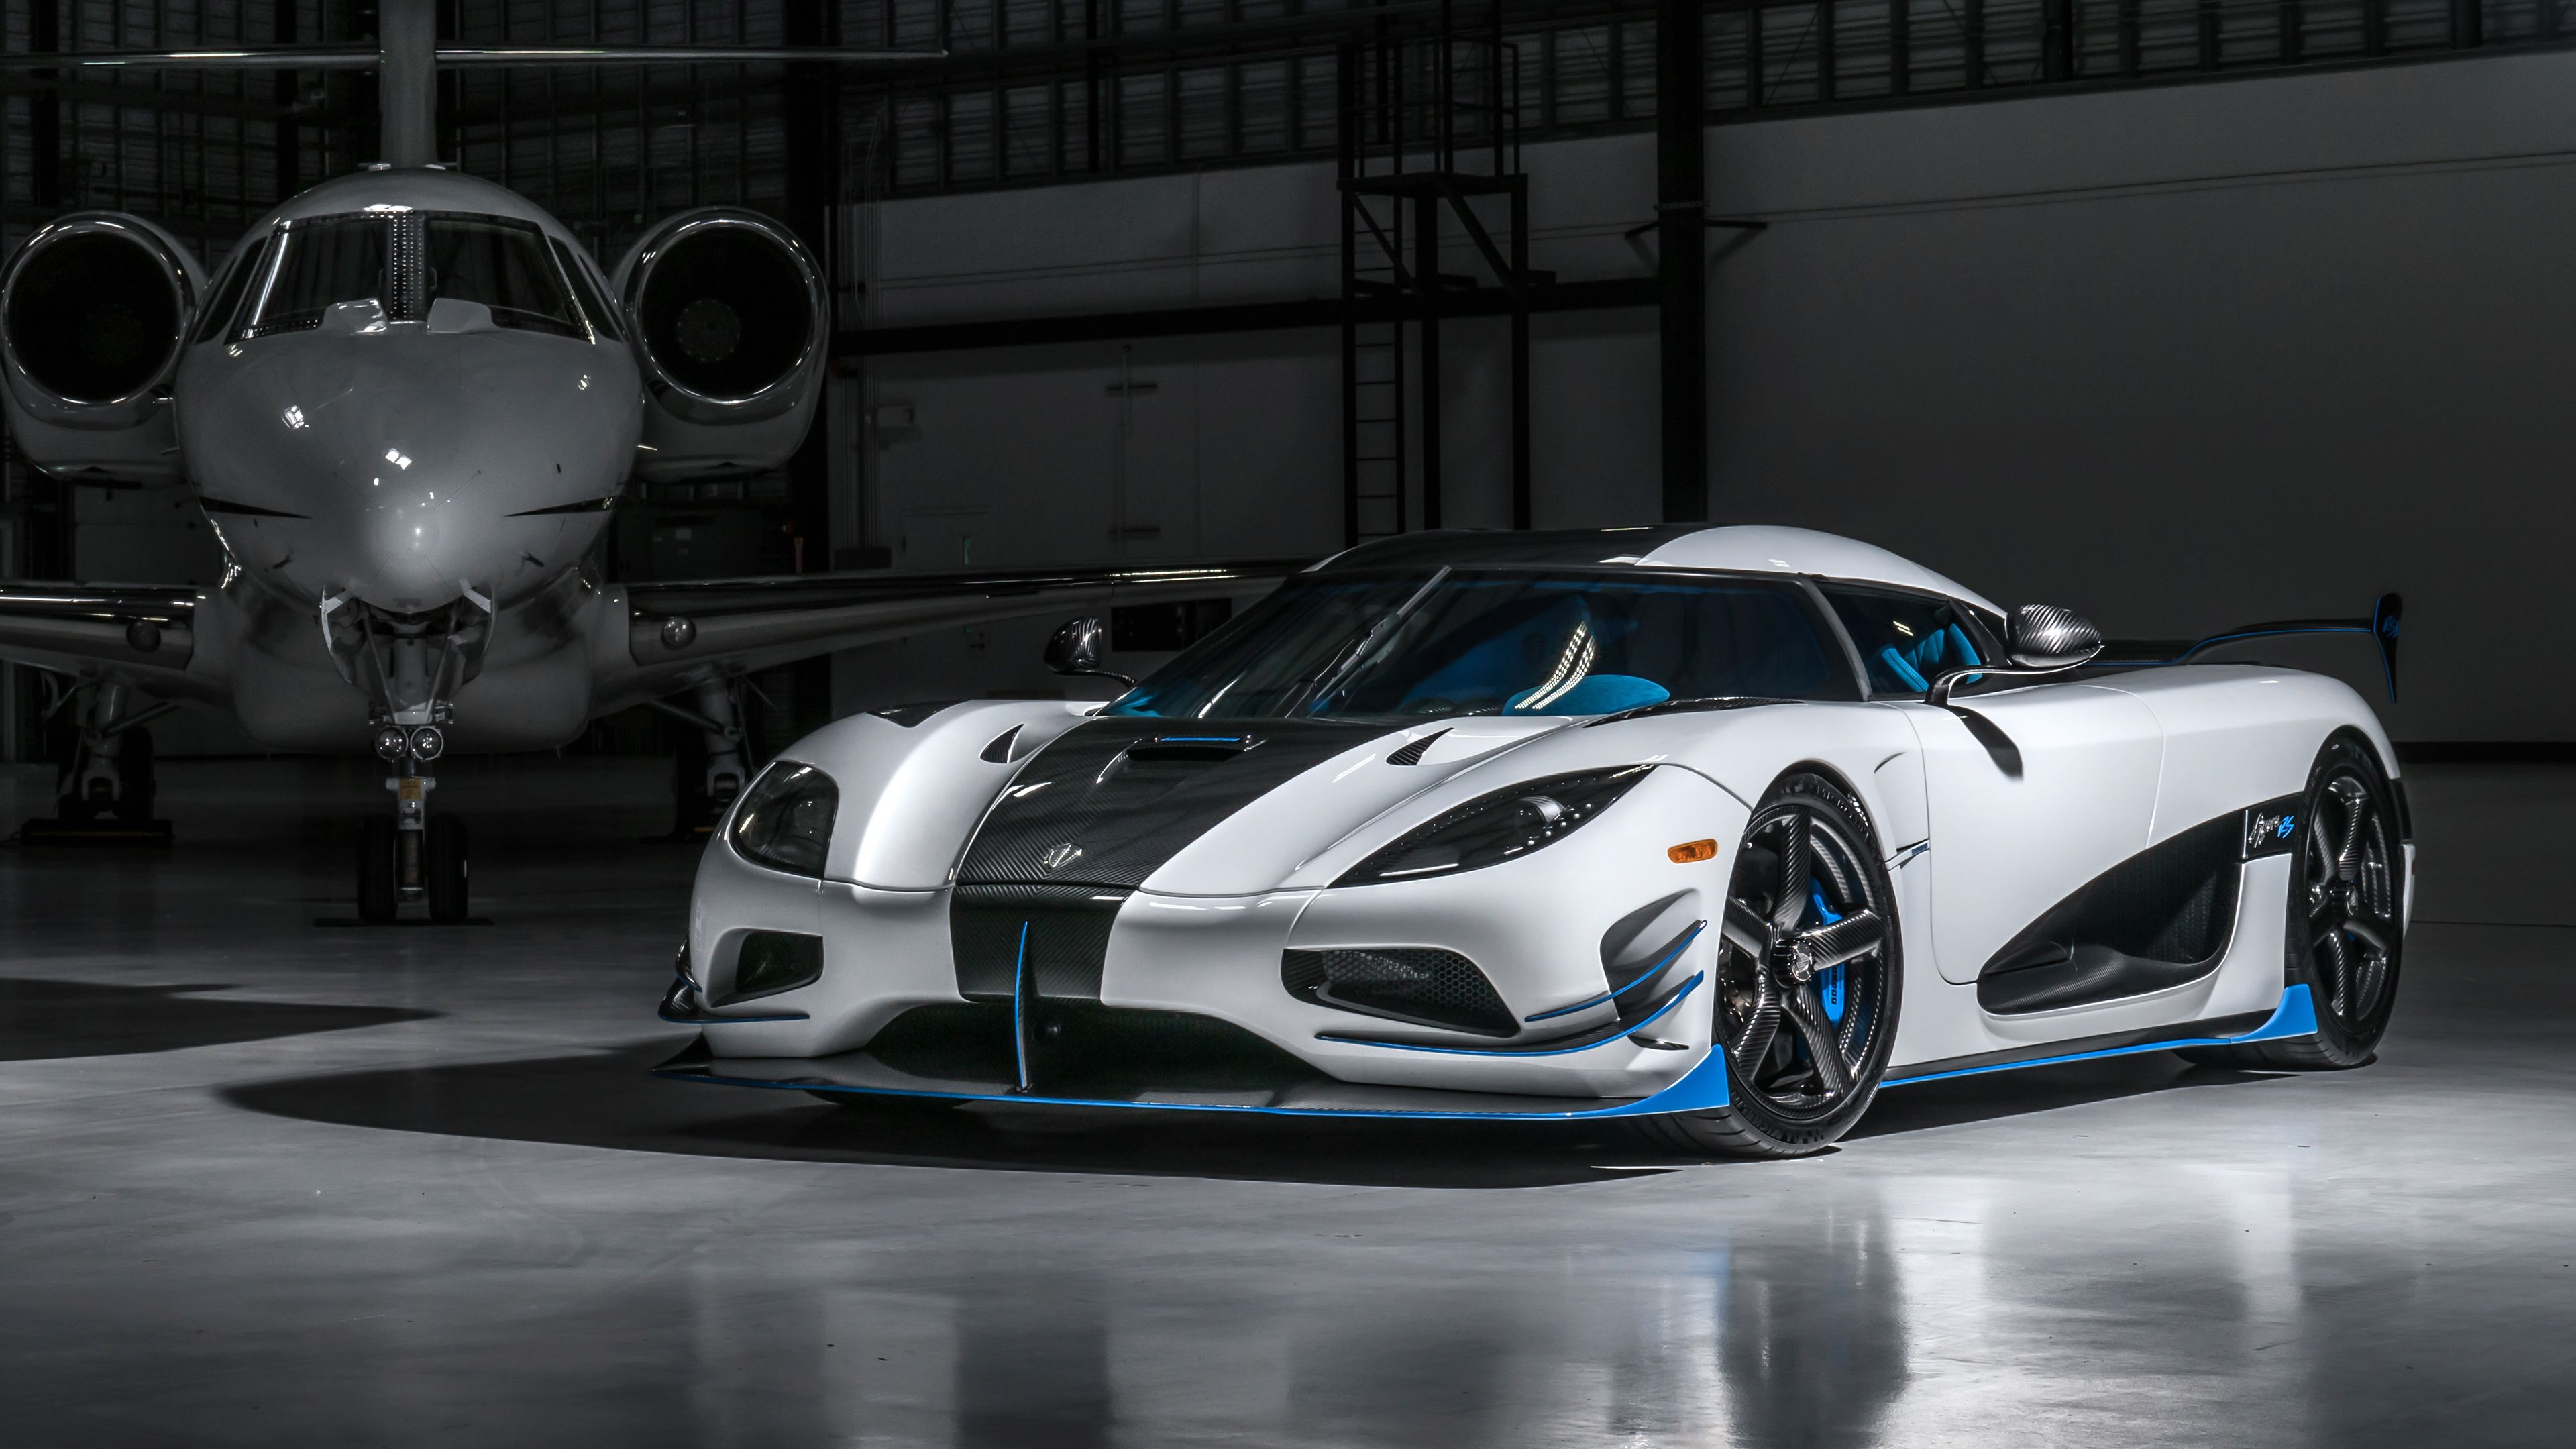 2019 Koenigsegg Agera Rs1 Koenigsegg Agera Wallpapers Hd Wallpapers Cars Wallpapers 4k Wallpapers Koenigsegg Car Wallpapers Dream Cars